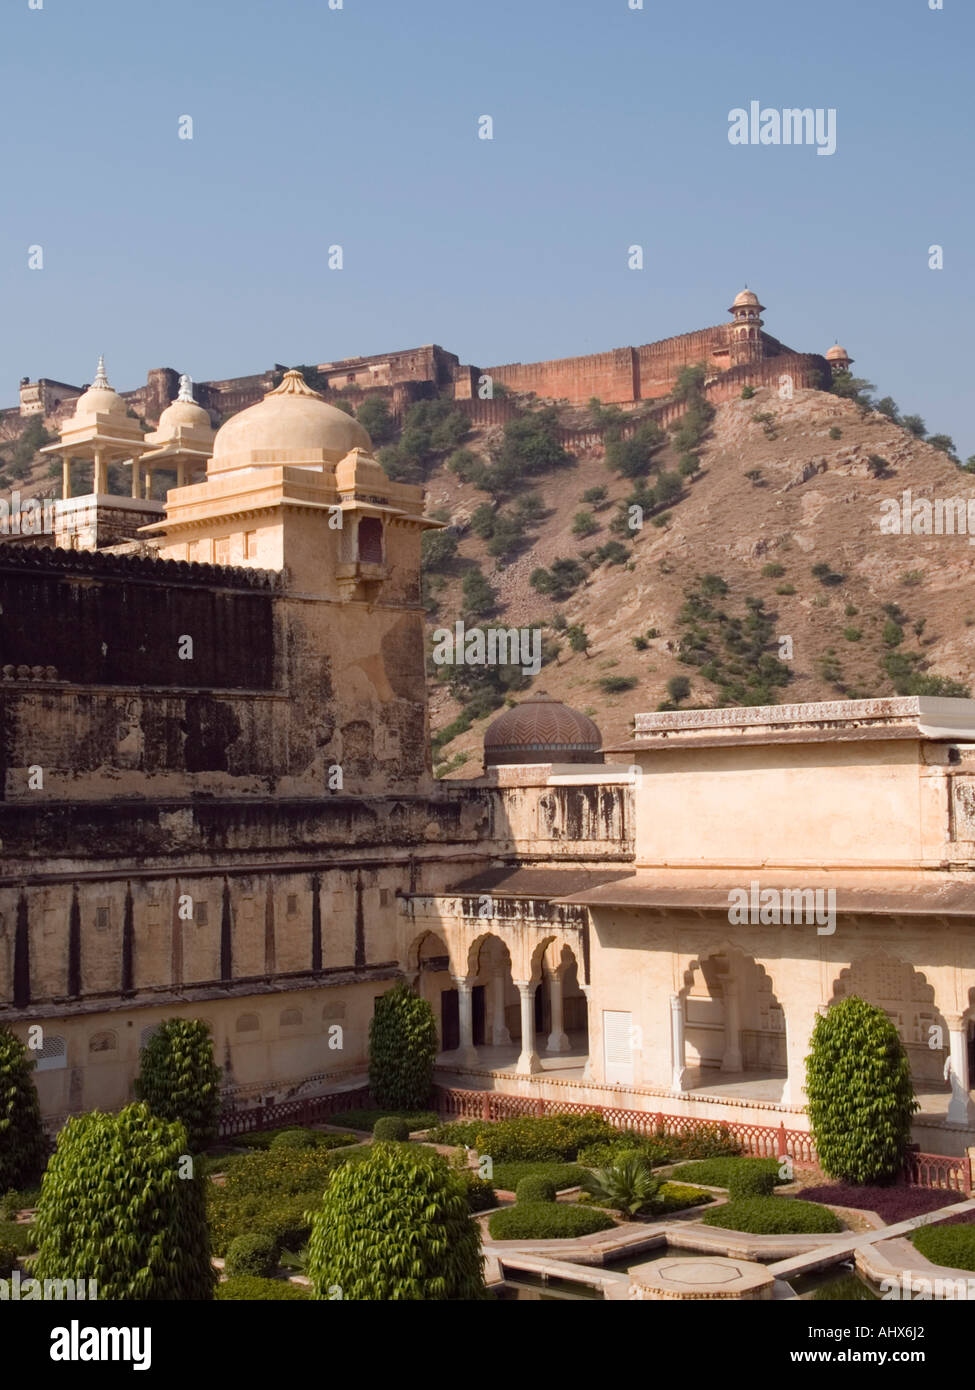 Amber Jaipur One of inner courtyard gardens of Amber Palace inside ...